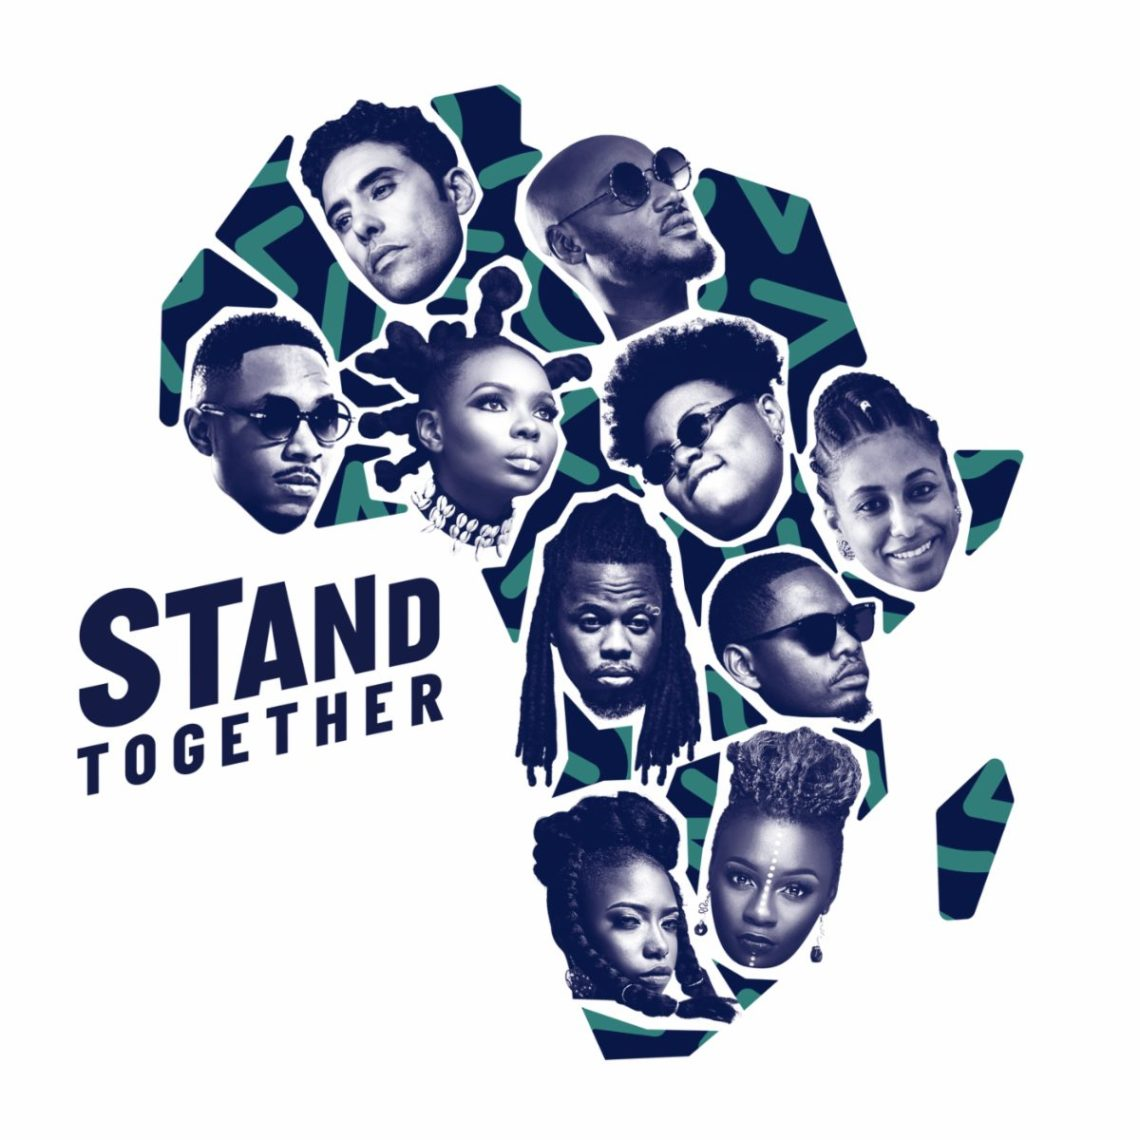 African Artists Are Fighting COVID-19 With A Song, Stand Together